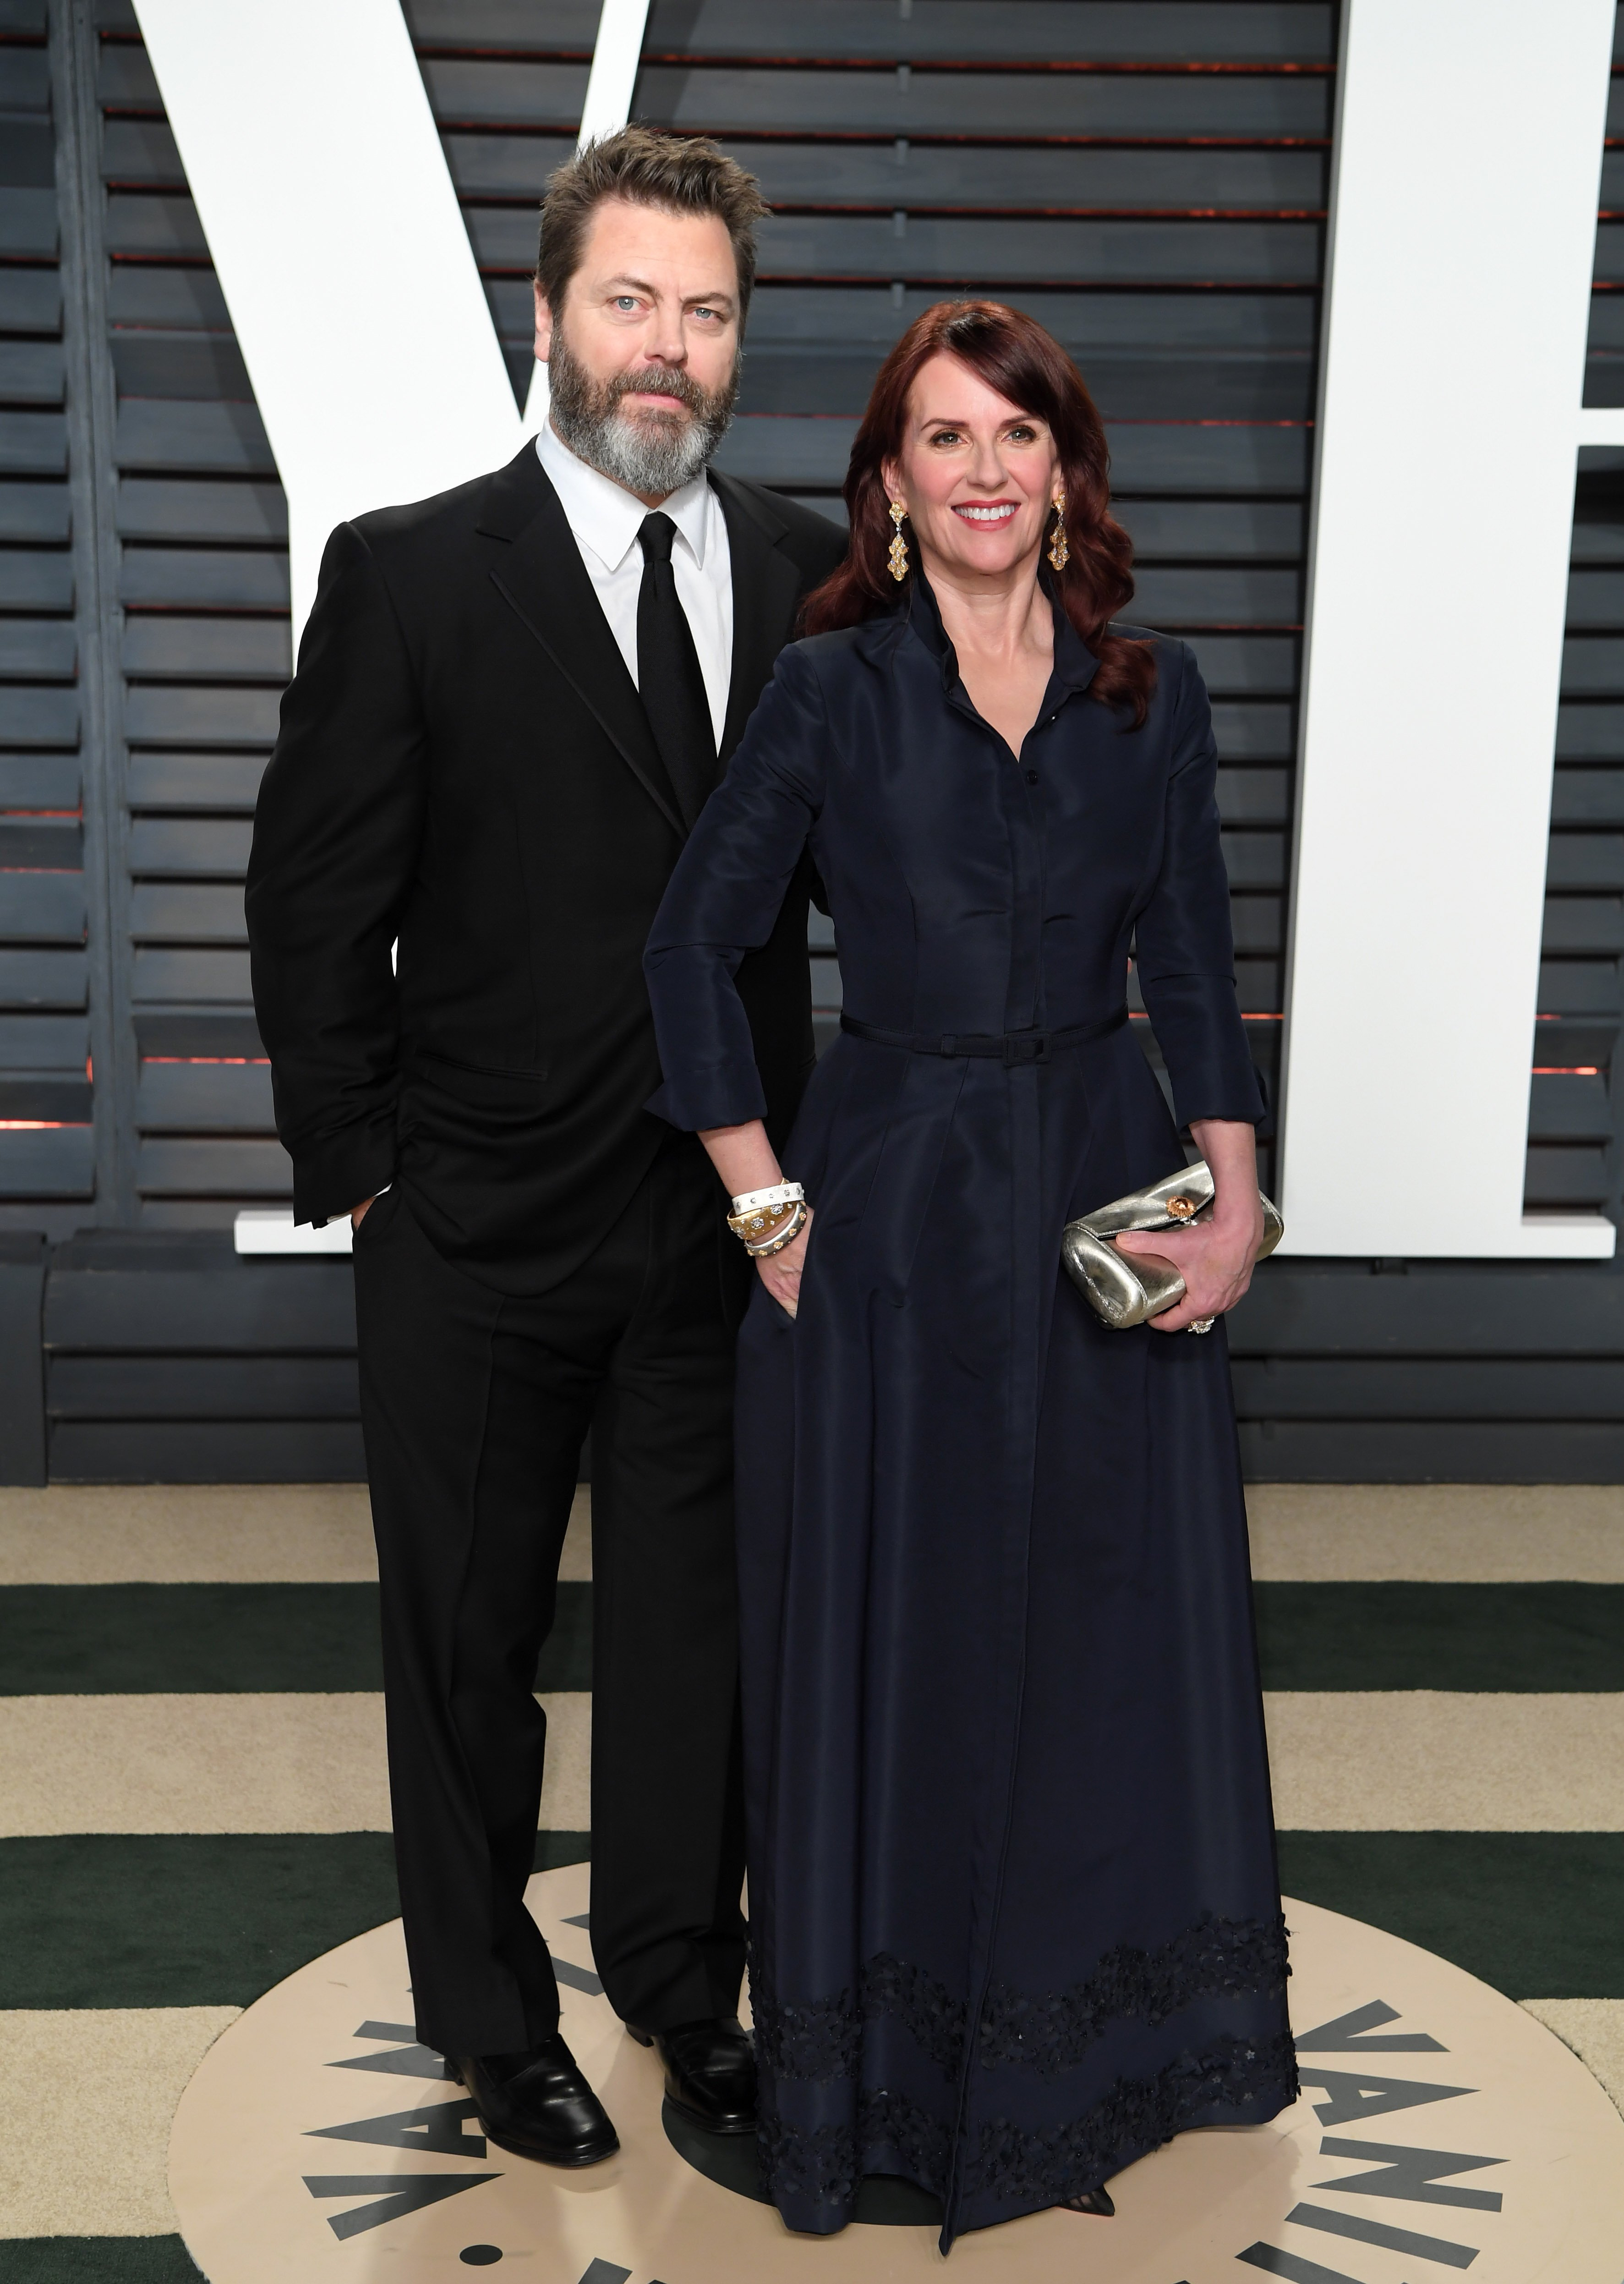 Nick Offerman and Megan Mullally arrive for the Vanity Fair Oscar Party hosted by Graydon Carter at the Wallis Annenberg Center for the Performing Arts on February 26, 2017, in Beverly Hills, California. | Source: Getty Images.